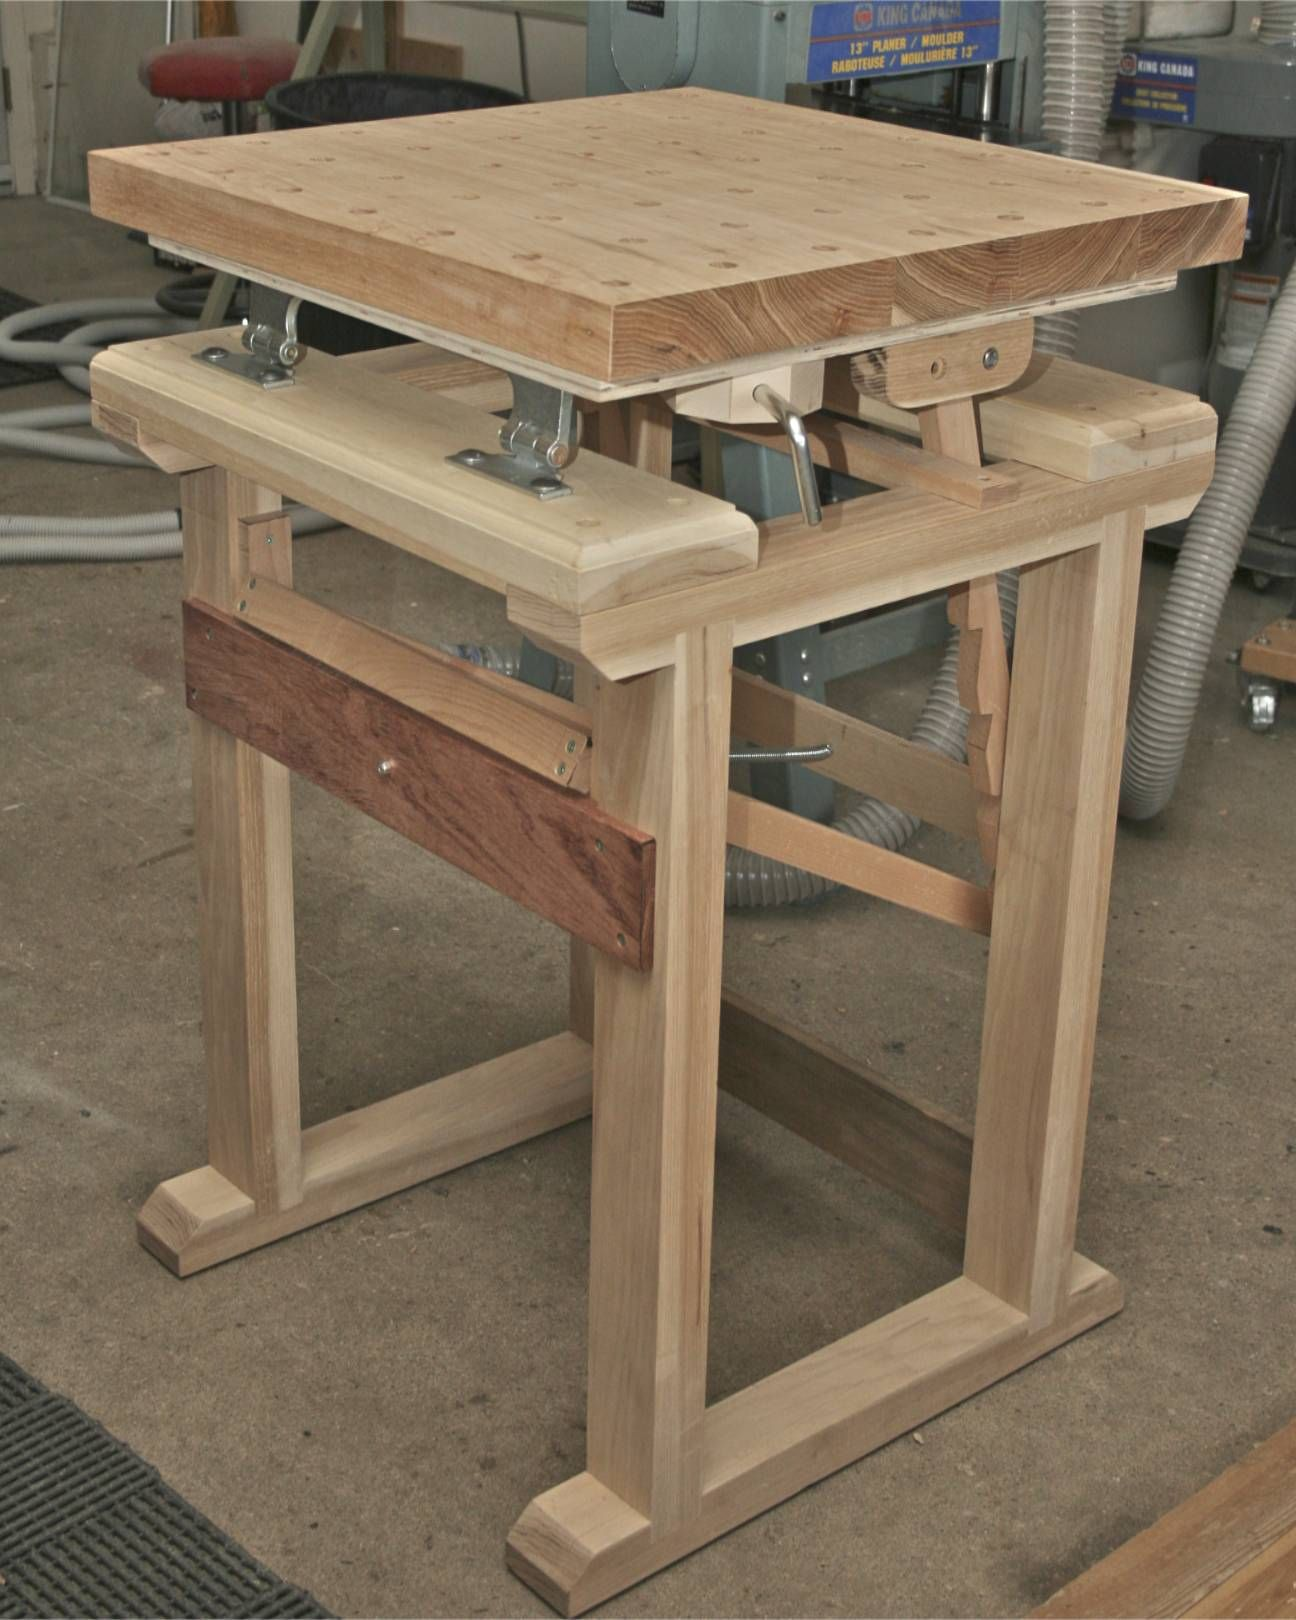 innovative wood carving table design